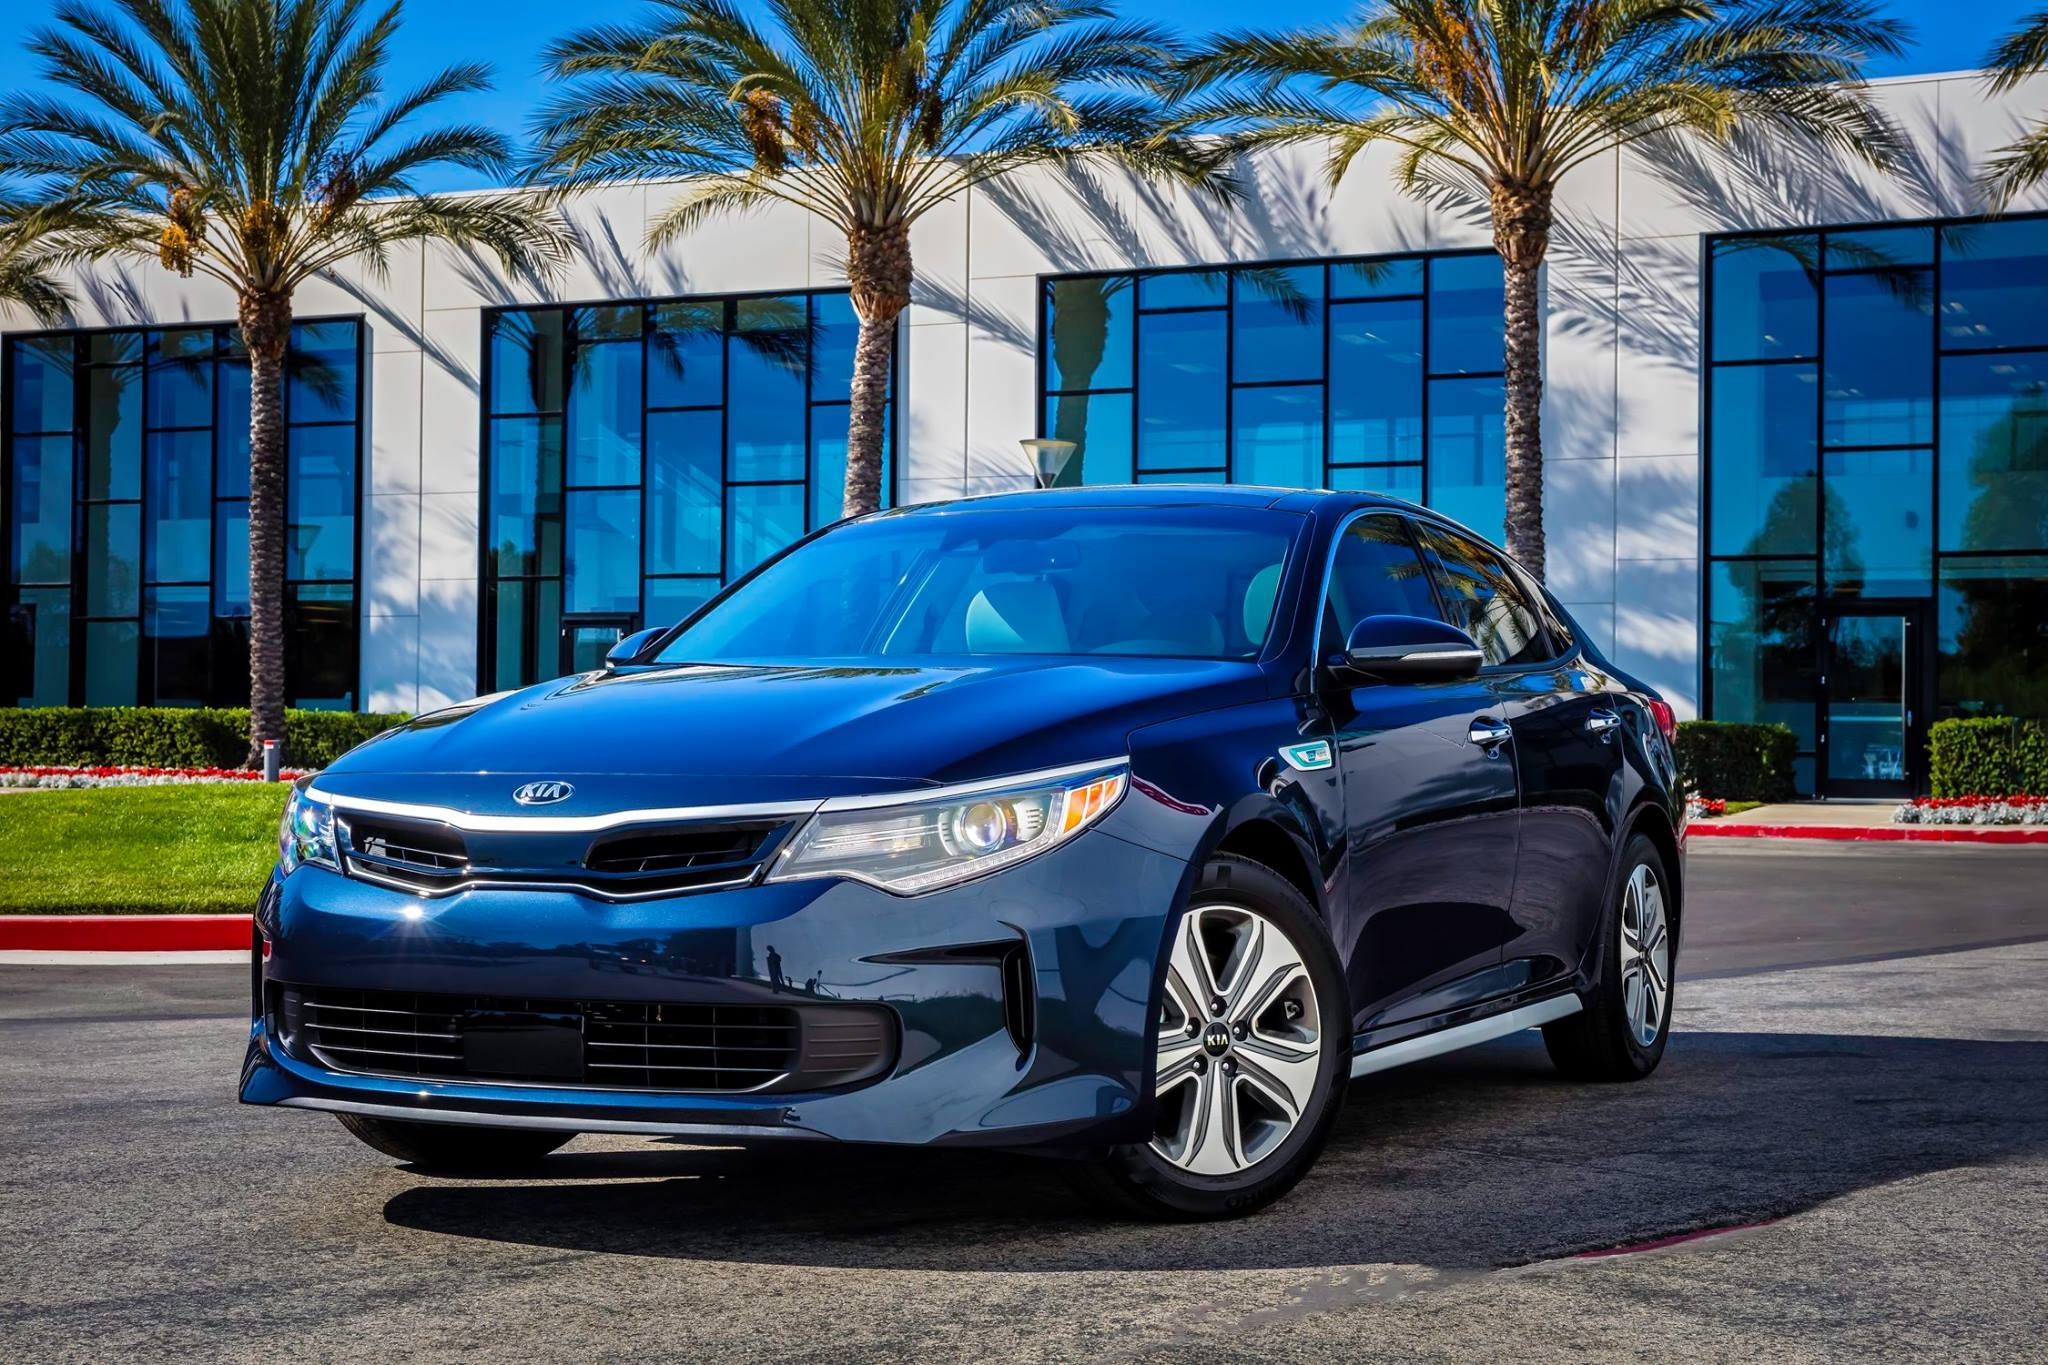 ex right sale on in la copart title auto salvage auctions en online rouge carfinder of lot kia cert baton brown view optima